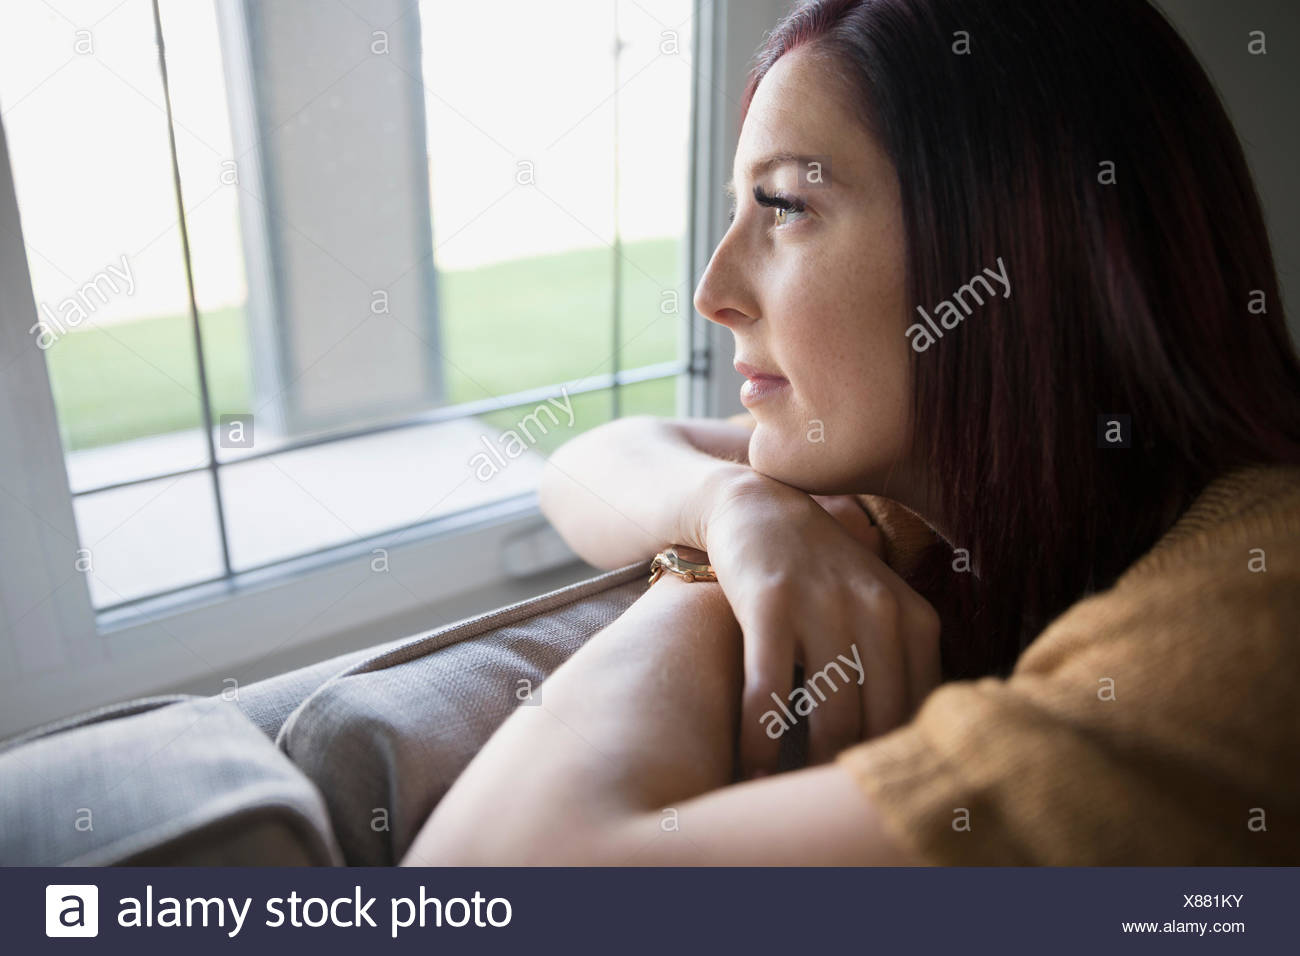 Pensive woman on sofa looking out window - Stock Image